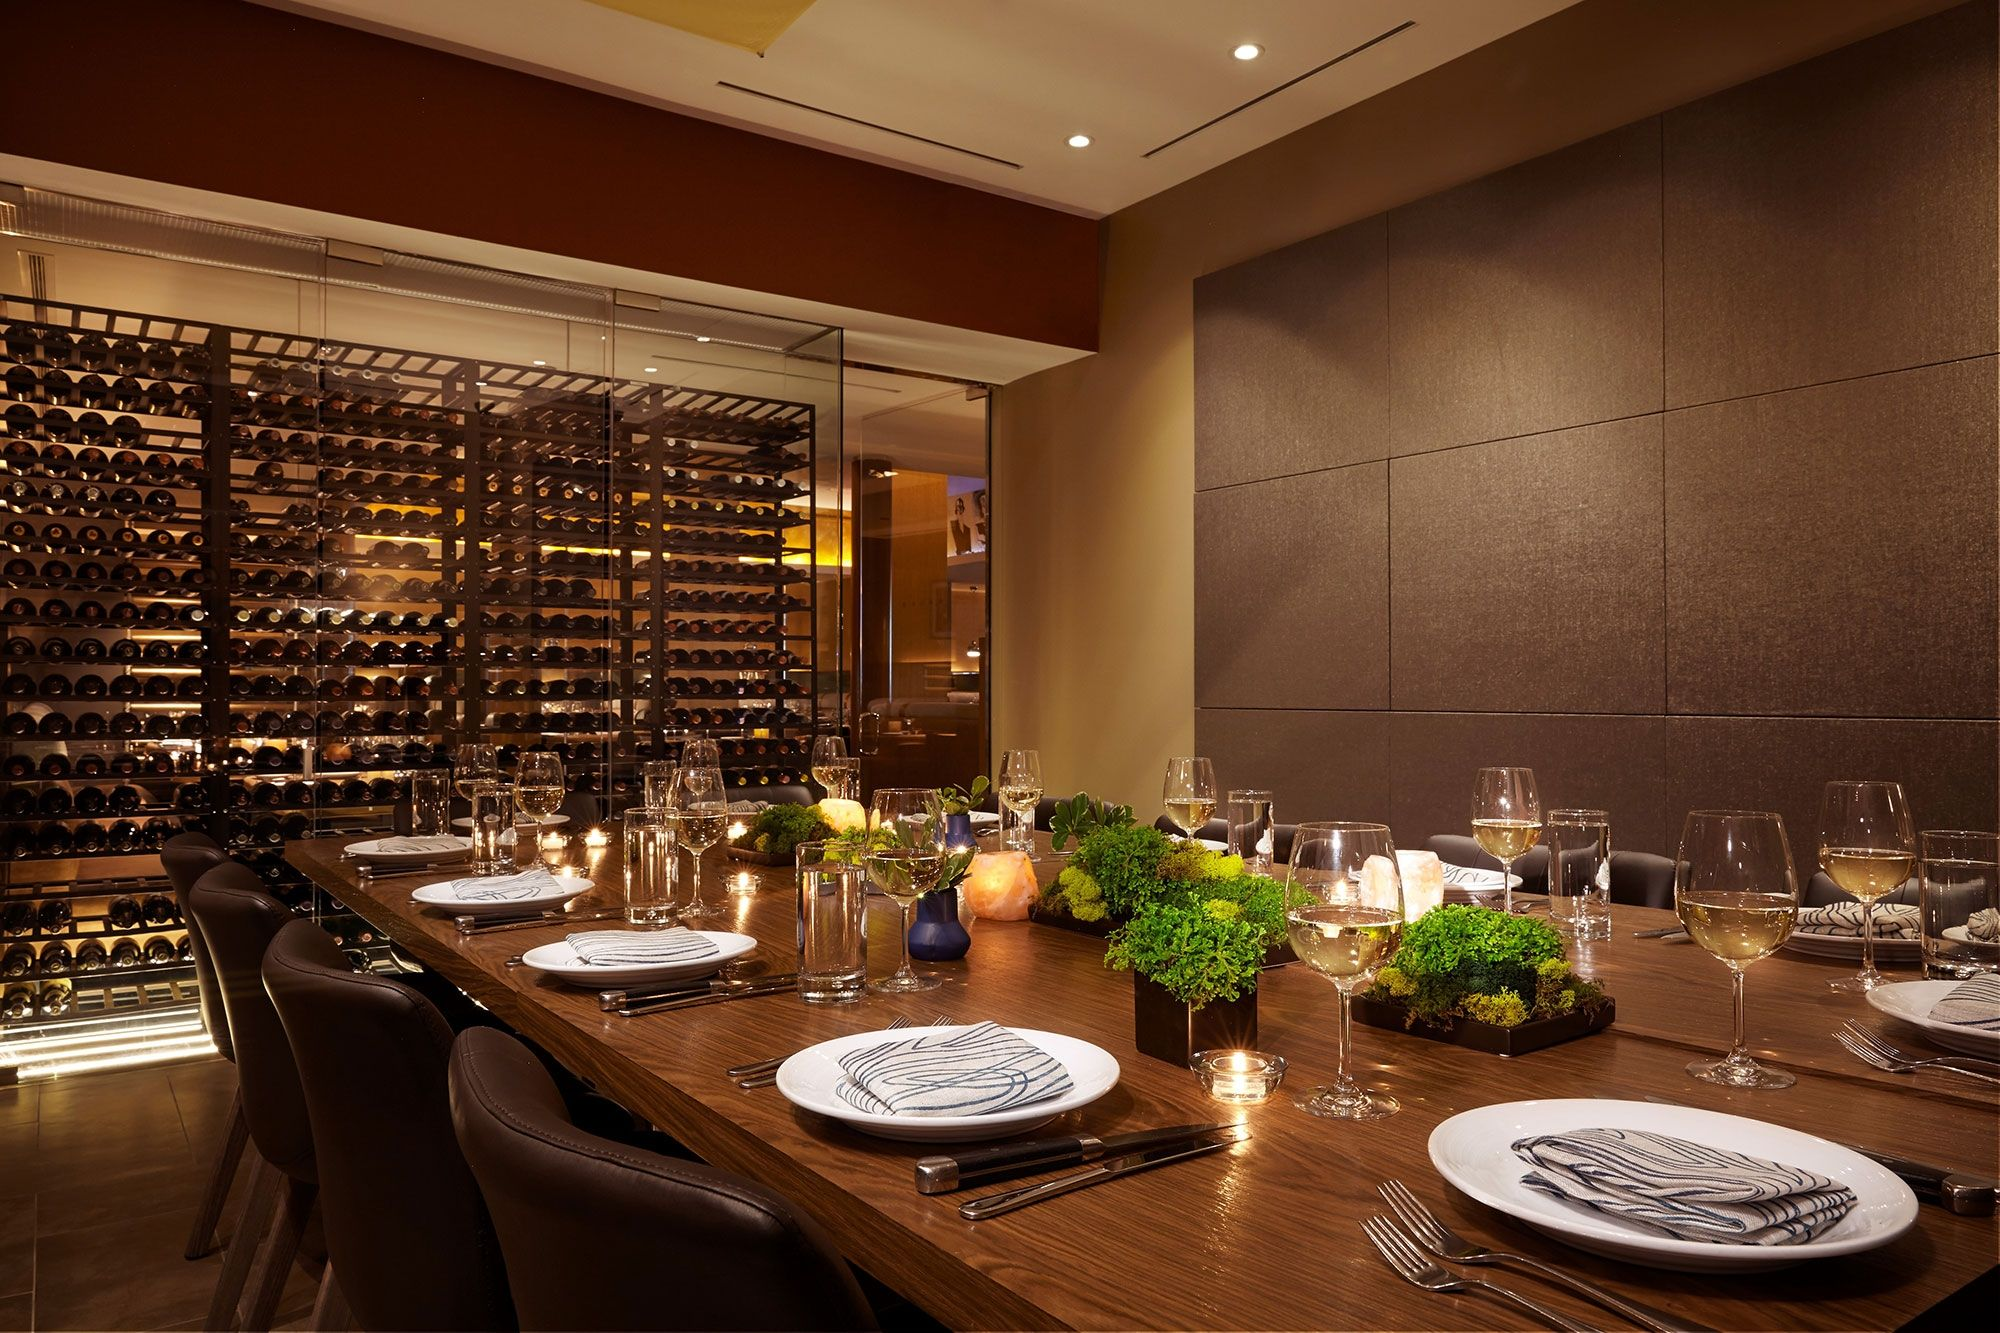 Chicago Restaurants With Private Dining Rooms Interesting Partnership W Printed Matter For All Guest Room And Public Space Design Inspiration